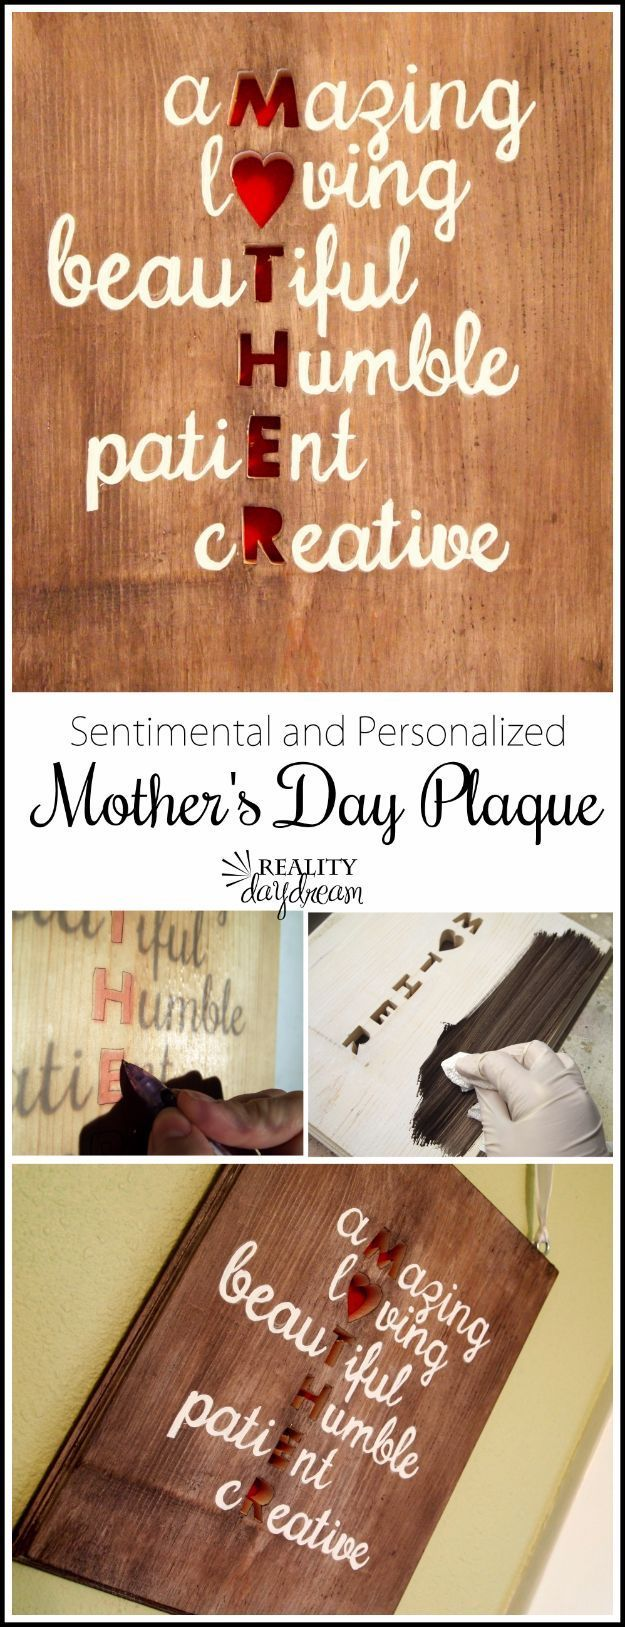 418 best diy gifts for moms images on pinterest bricolage craft 35 creatively thoughtful diy mothers day gifts solutioingenieria Gallery